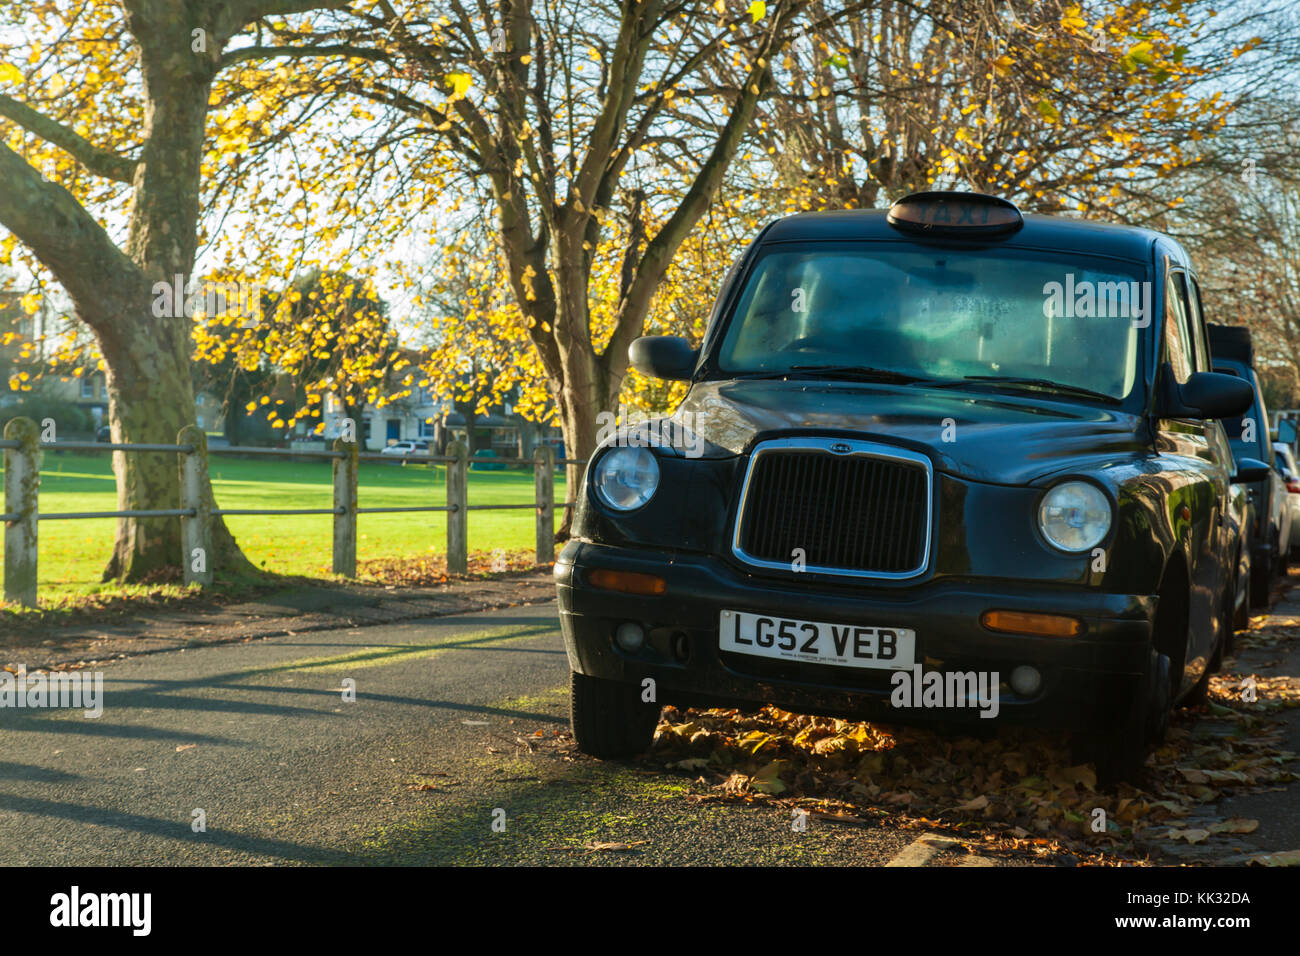 Hackney cab on a street in Southwick, West Sussex, England. - Stock Image